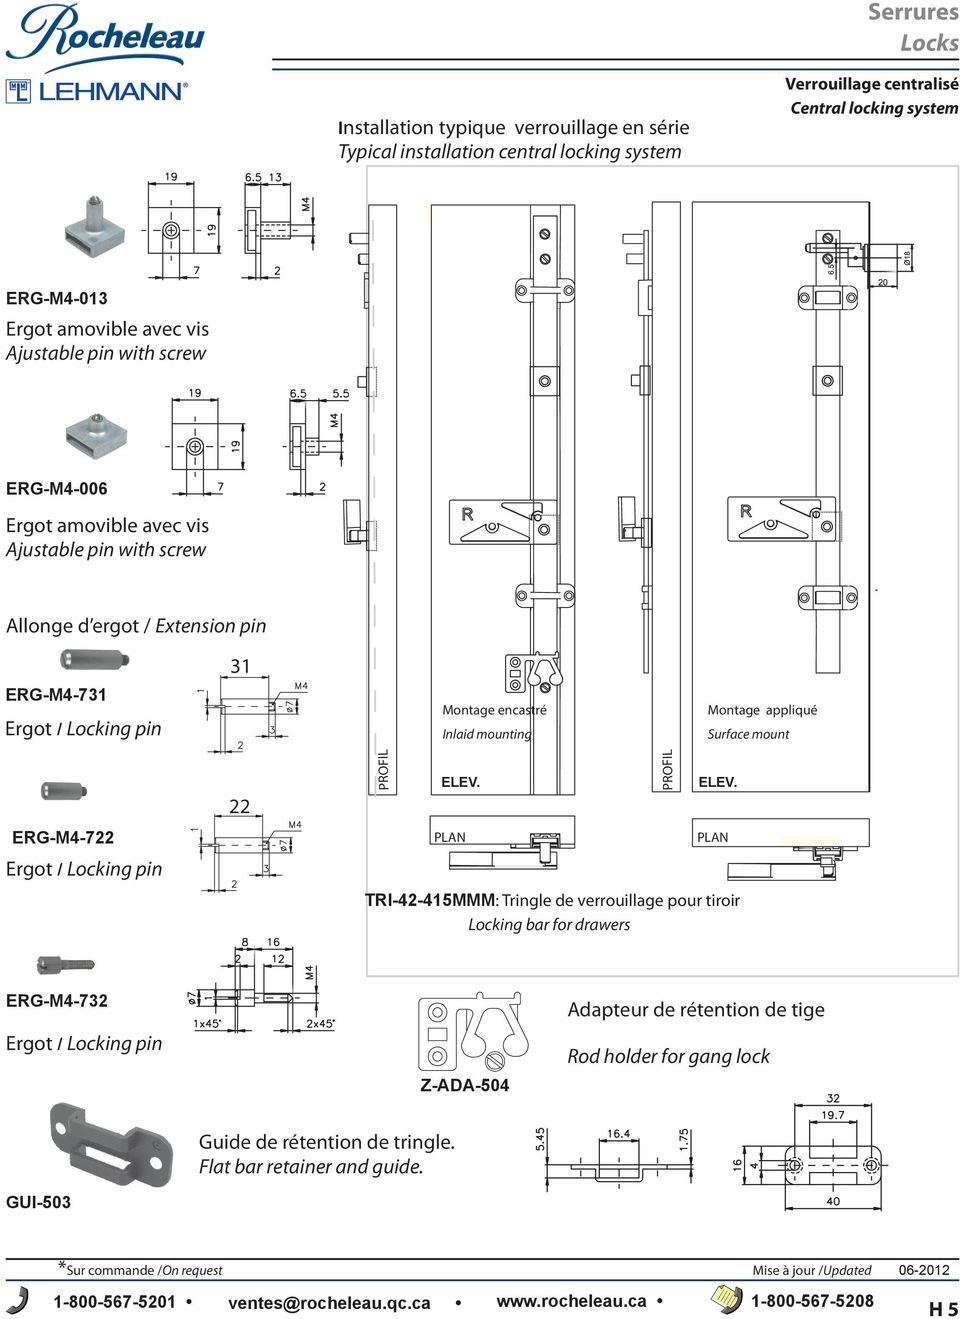 mount ERG-M4-7 Ergot / Locking pin ELEV. PLAN ELEV.